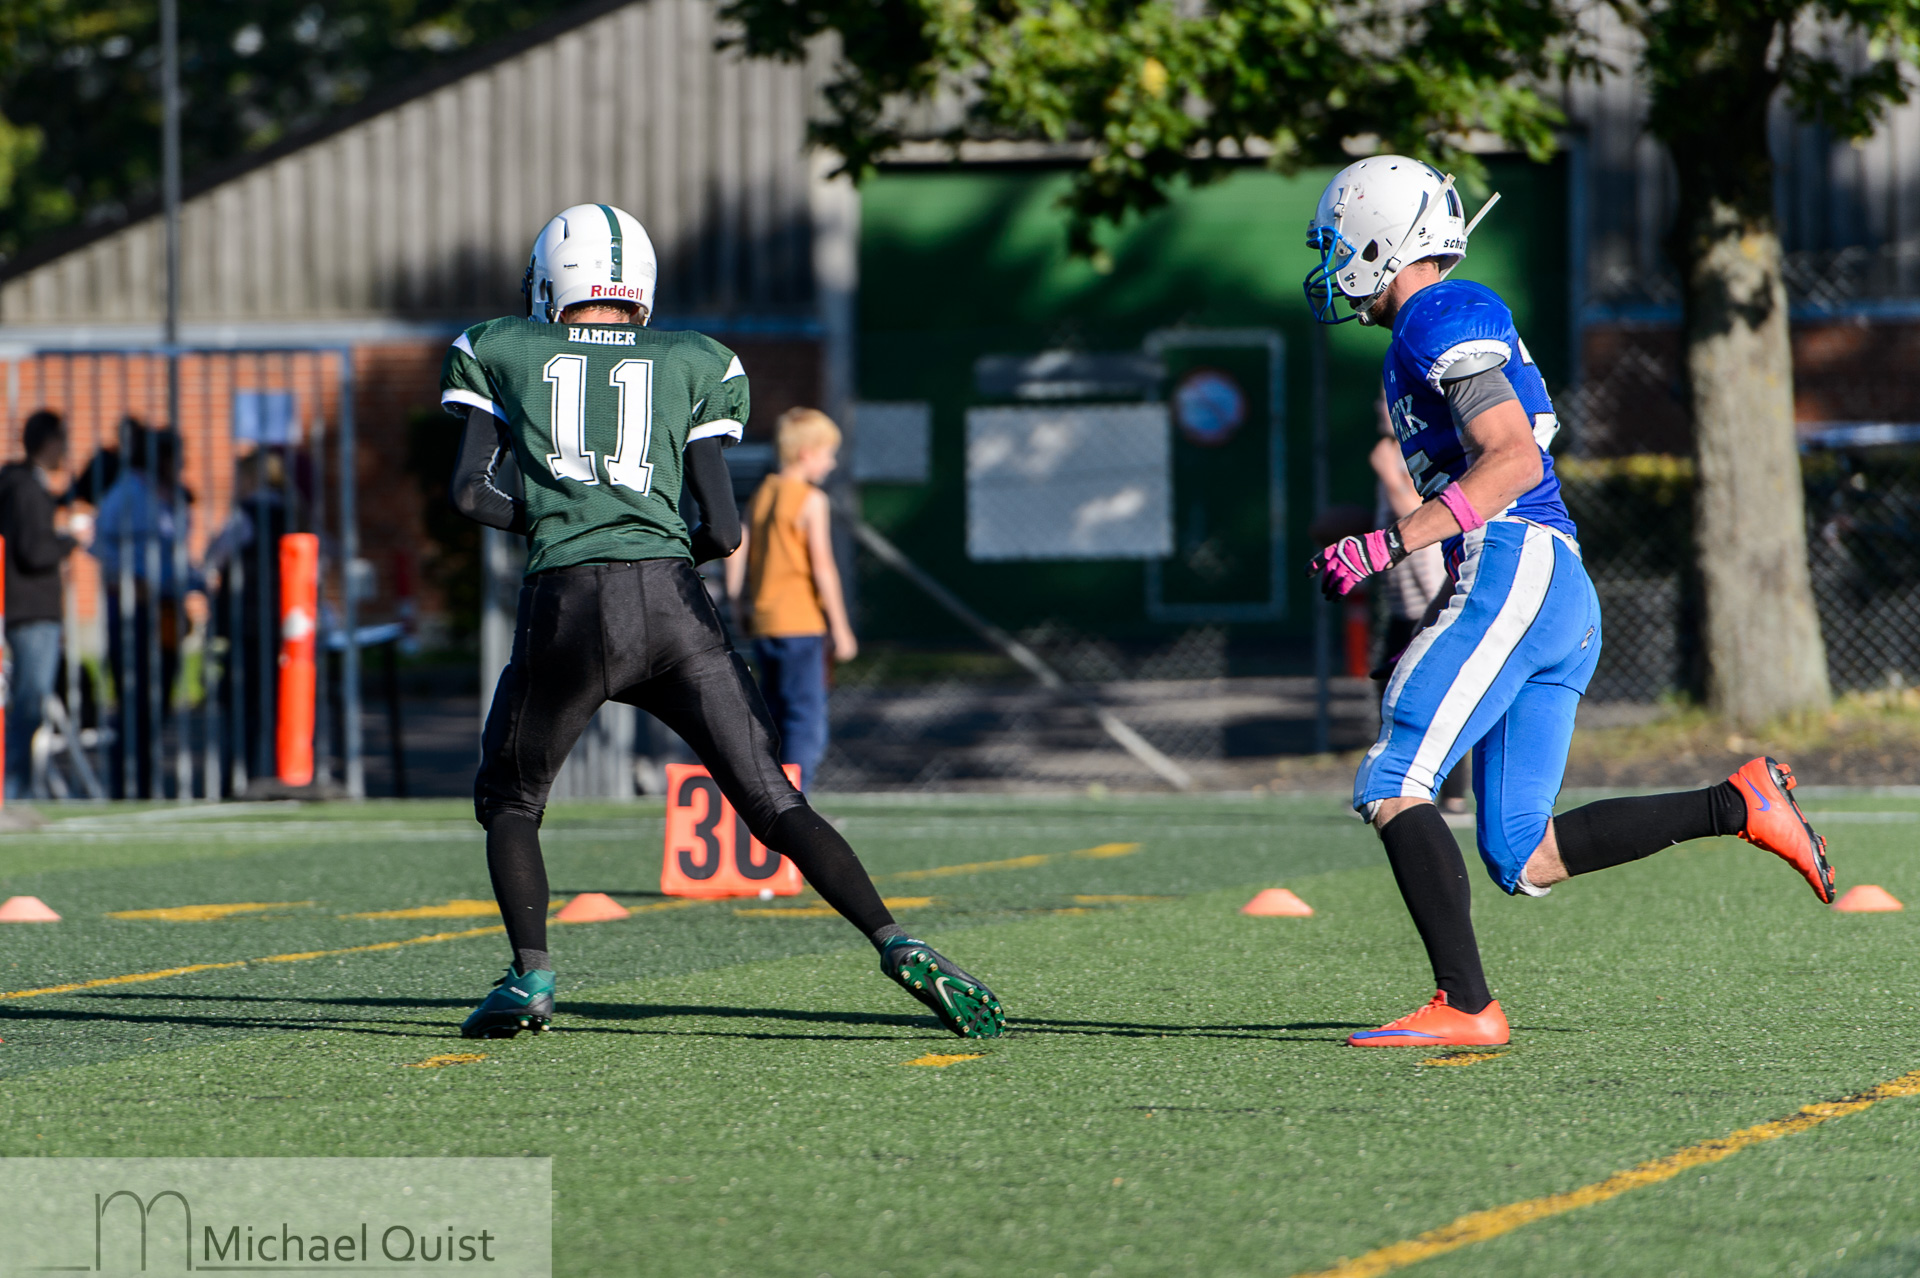 U16-RS-Bowl-2015-Ørestaden-Spartans-vs-Slagelse-Wolfpack-36